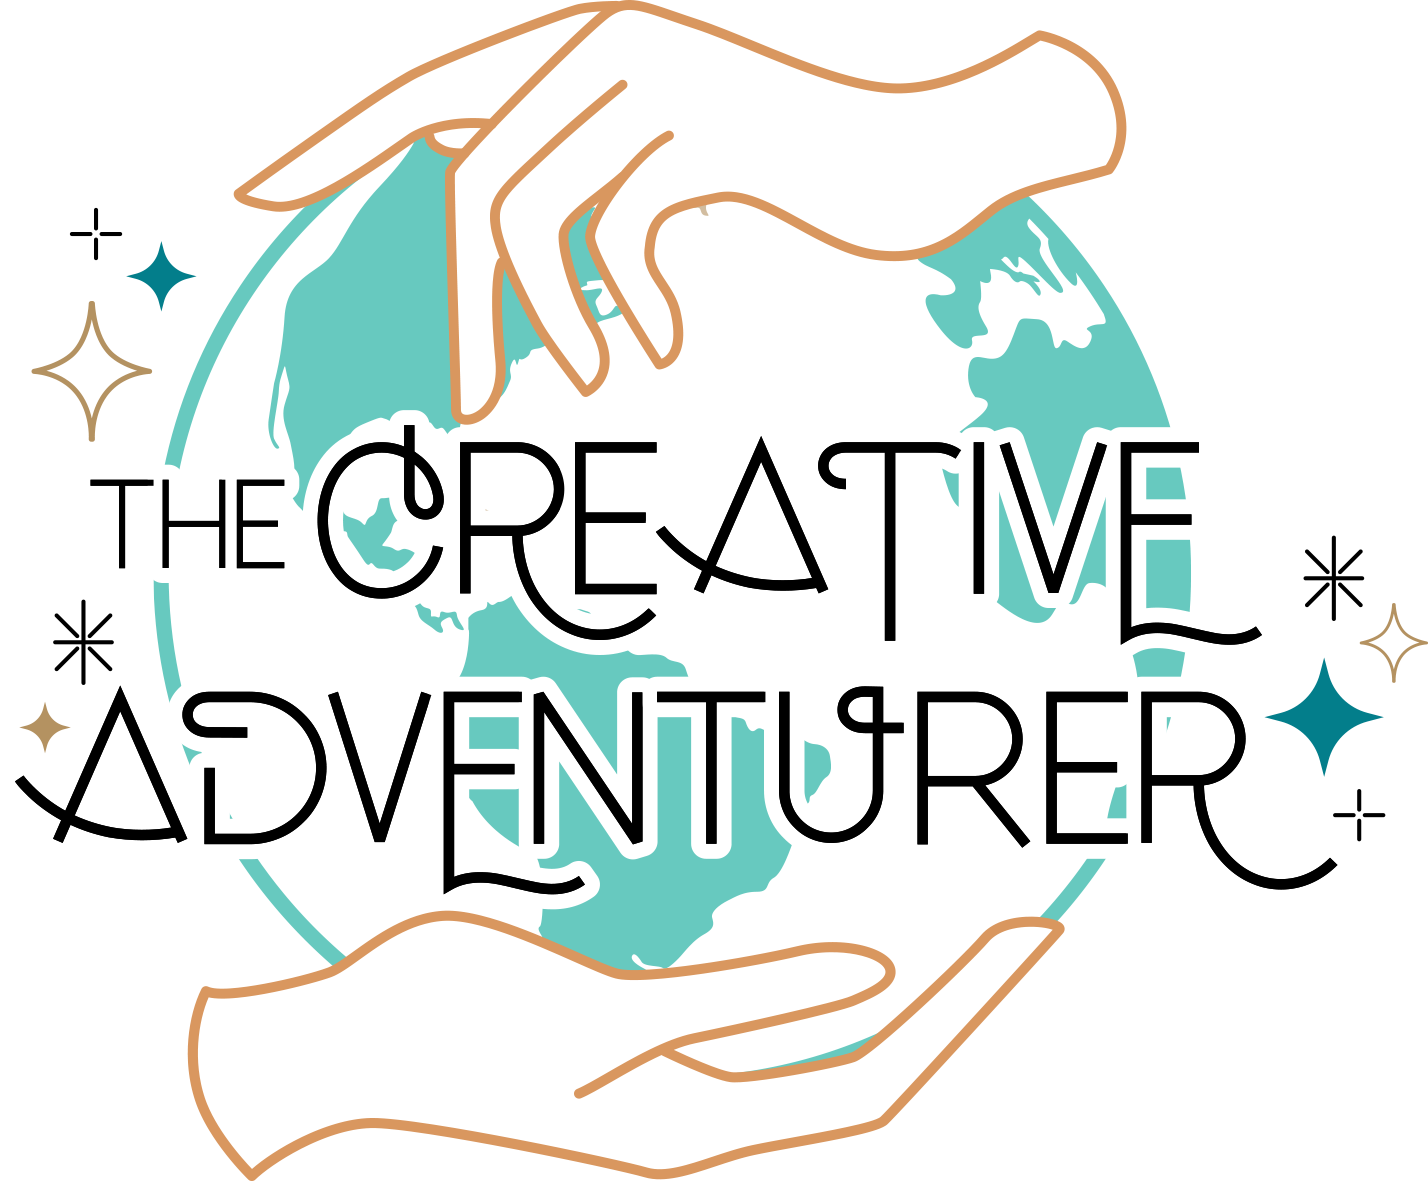 The Creative Adventurer